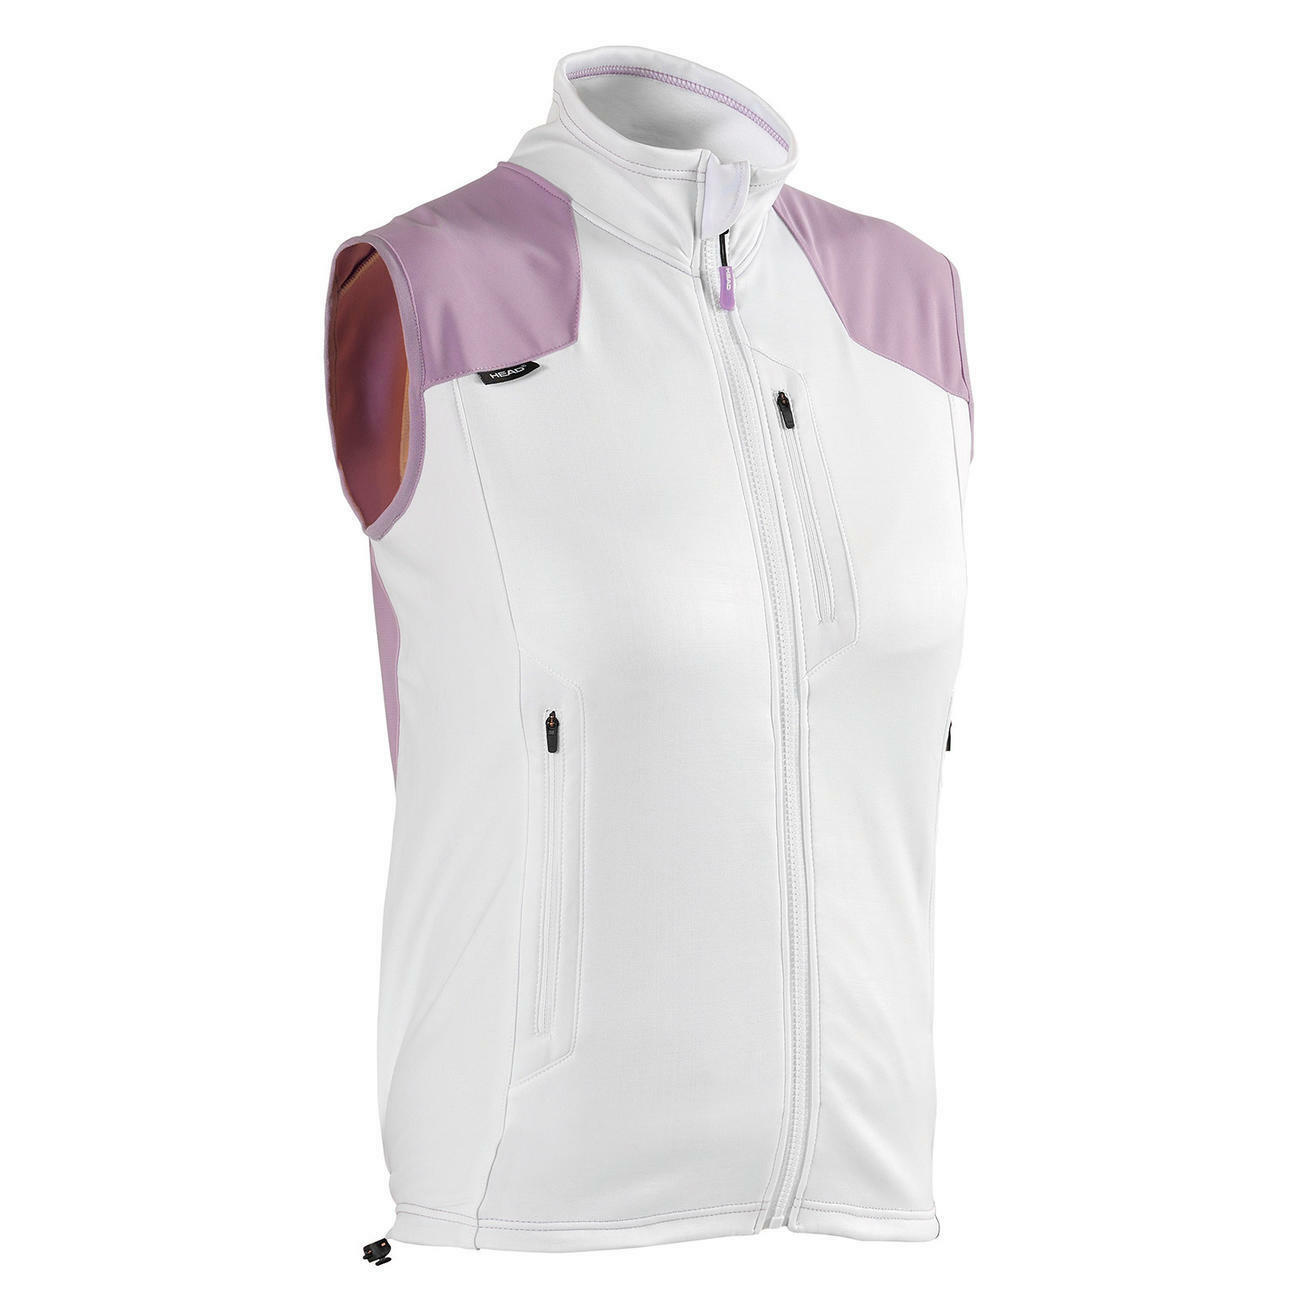 Predection Women's head Flexor Wmn Vest Size M  Discount 50%  store online